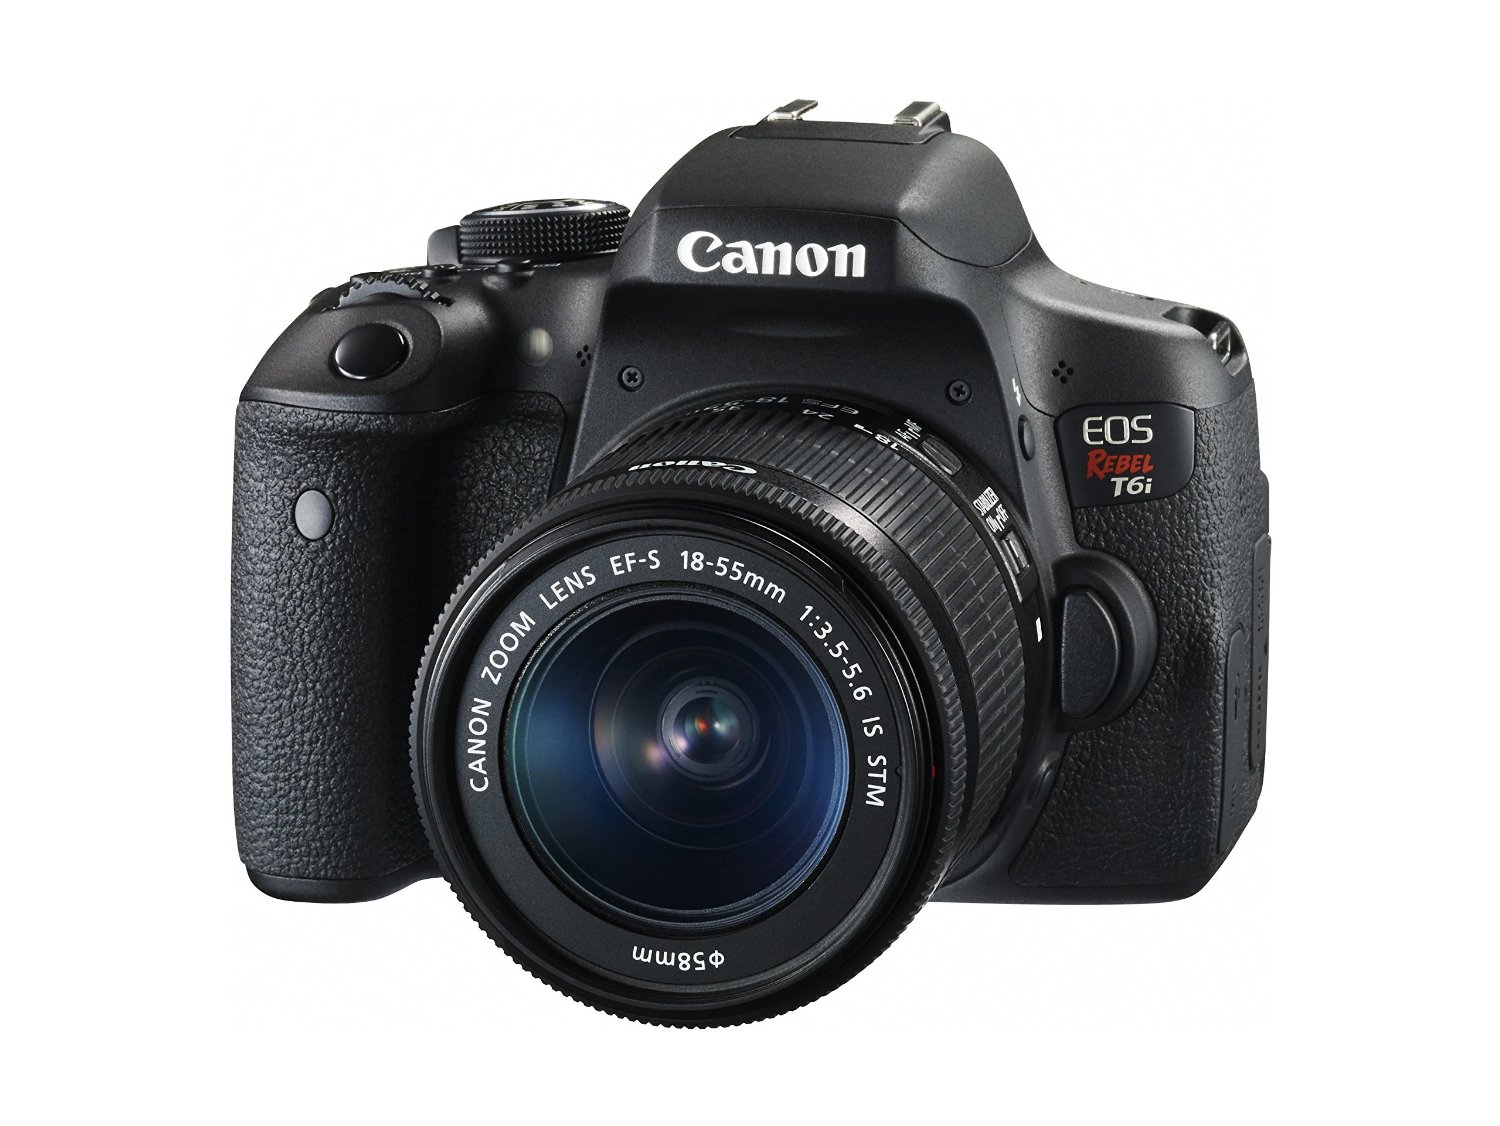 Canon EOS T6i with 18-55mm lens